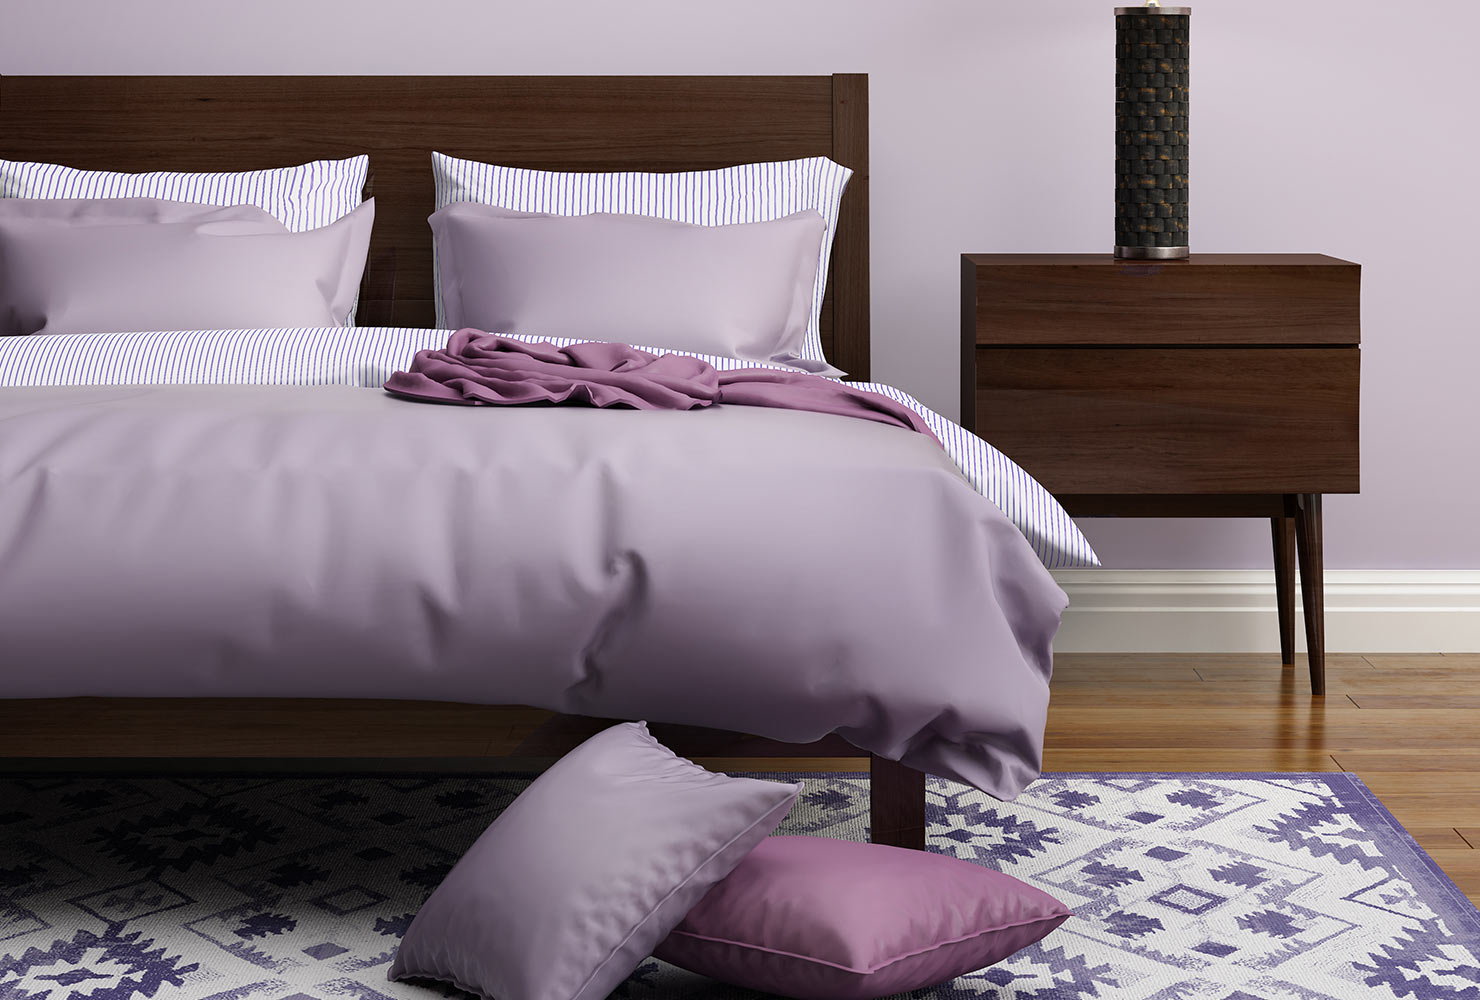 Purple bed decor with tribal rug.